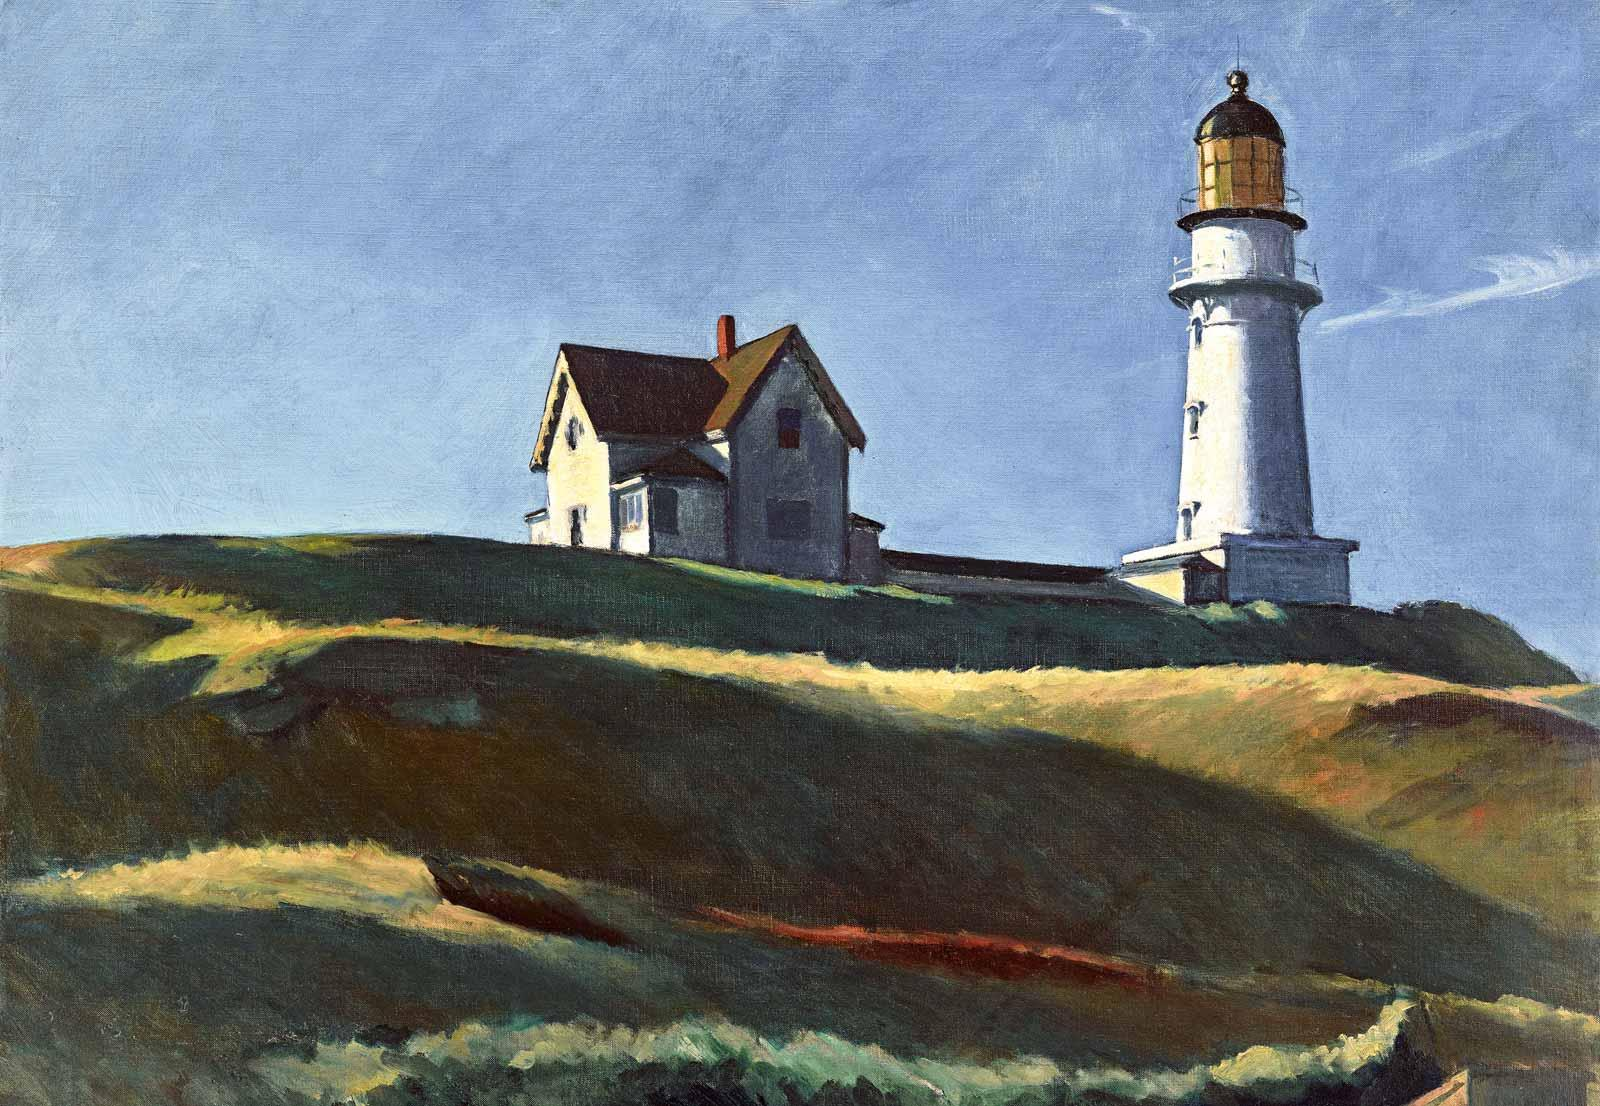 Edward Hopper, Lighthouse Hill, 1927.